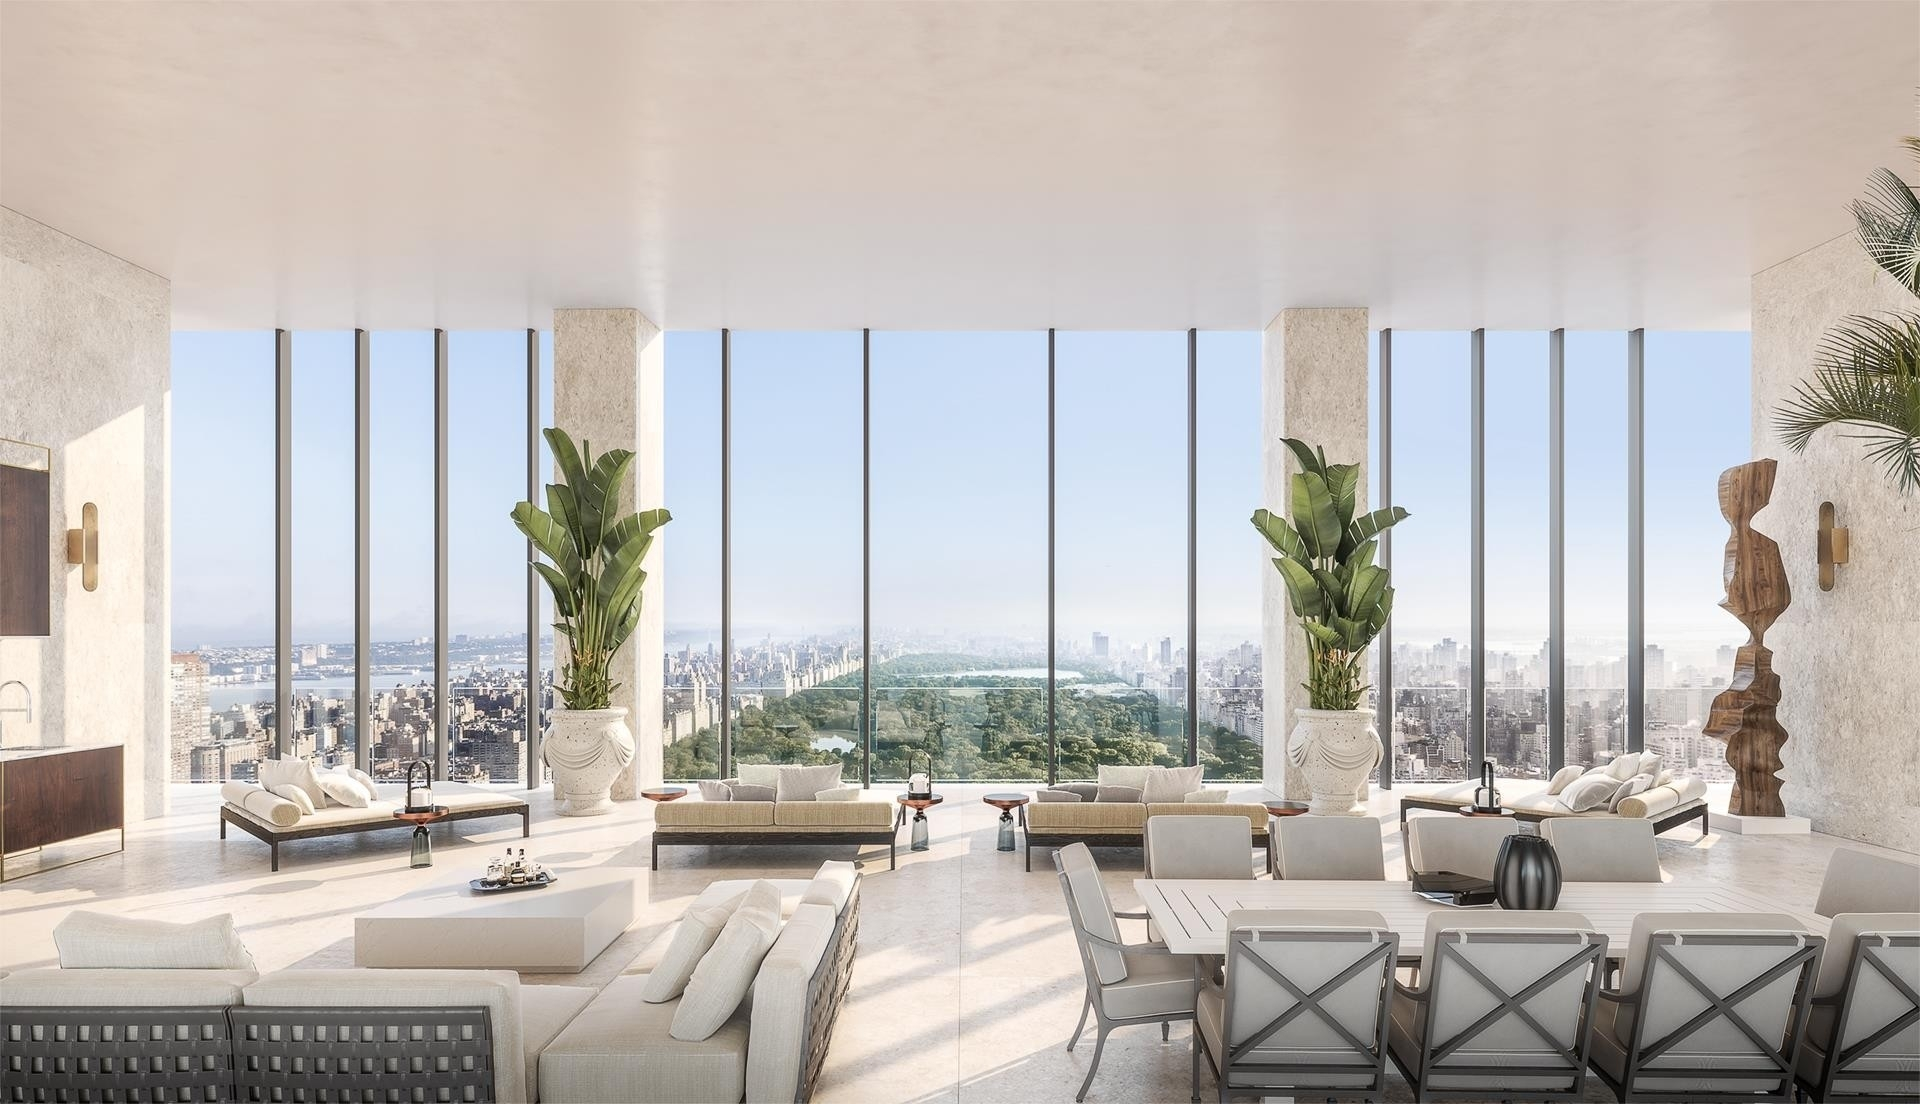 Condominium for Sale at 111 W 57TH ST , PH72 Midtown West, New York, NY 10019